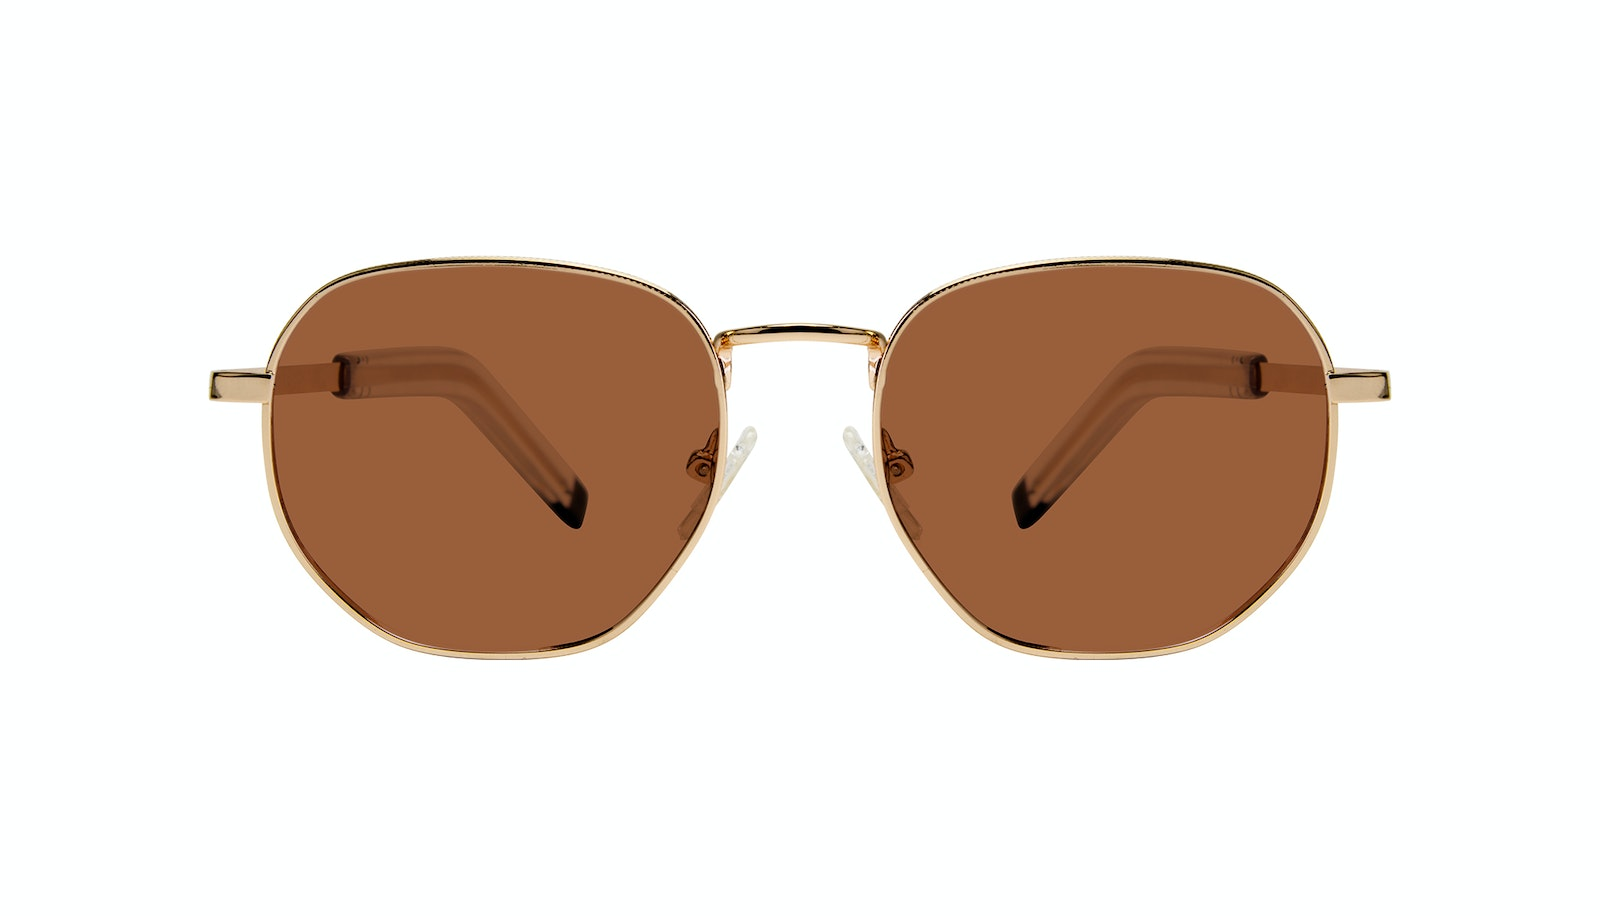 Affordable Fashion Glasses Round Sunglasses Men Rise Gold